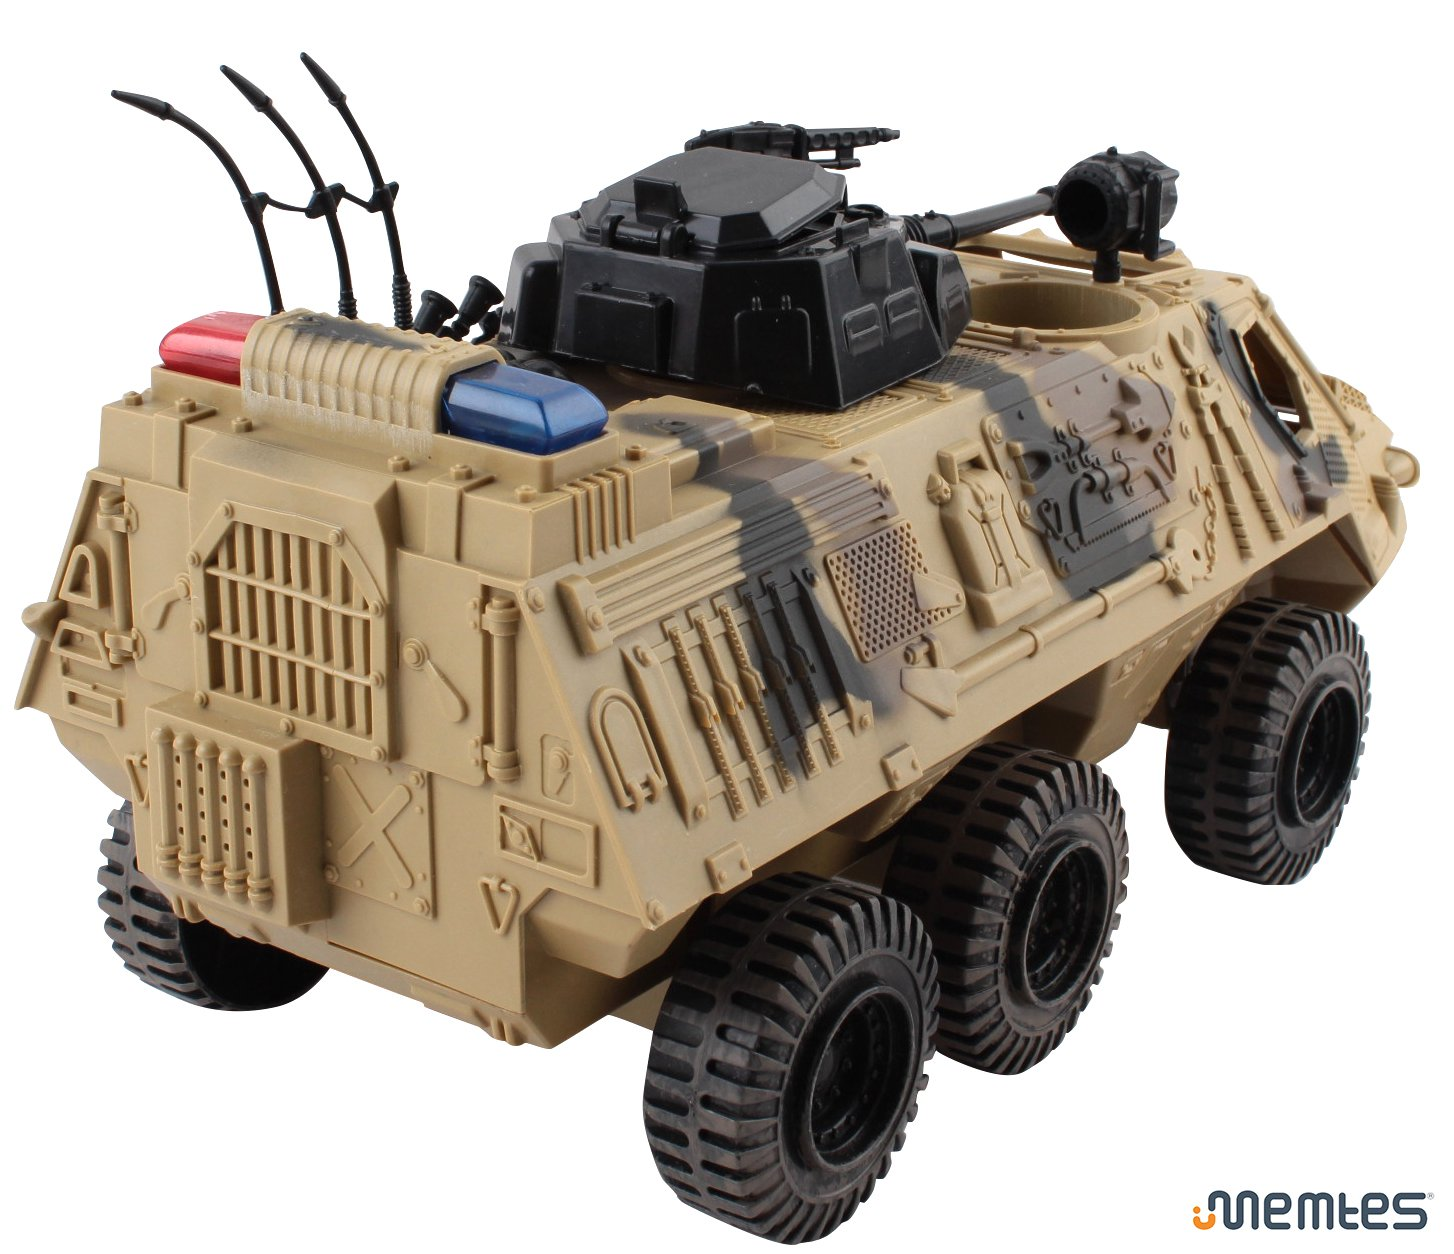 Memtes Military Fighter Army Truck Tank Toy with Mini Army Soldier with Lights and Sound by Memtes (Image #5)